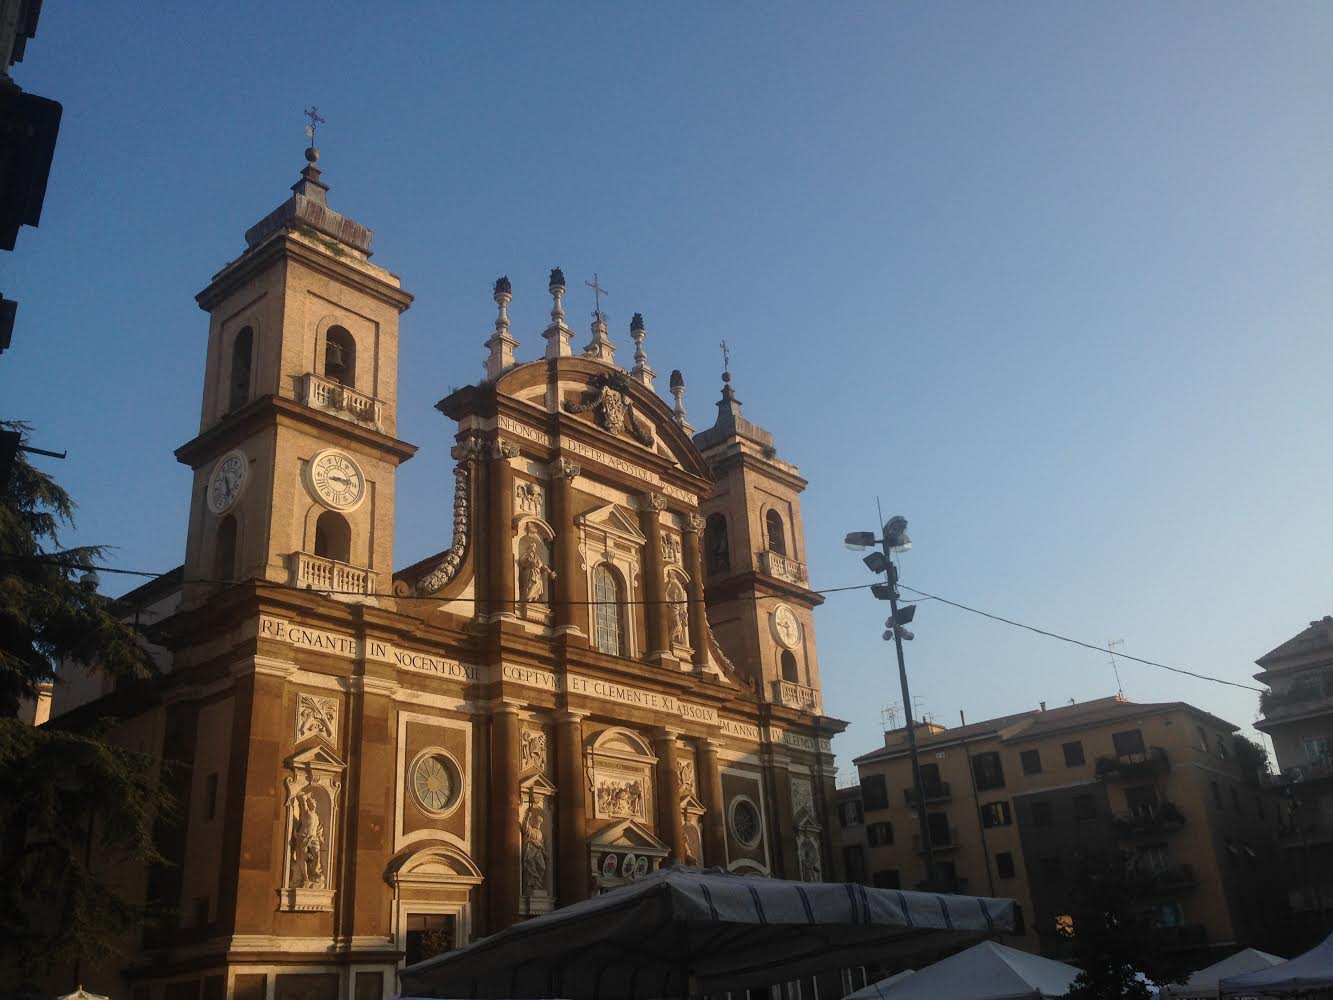 Visit the cathedral of Frascati, St Peter's. Located in the heart of the town, you won't miss it.